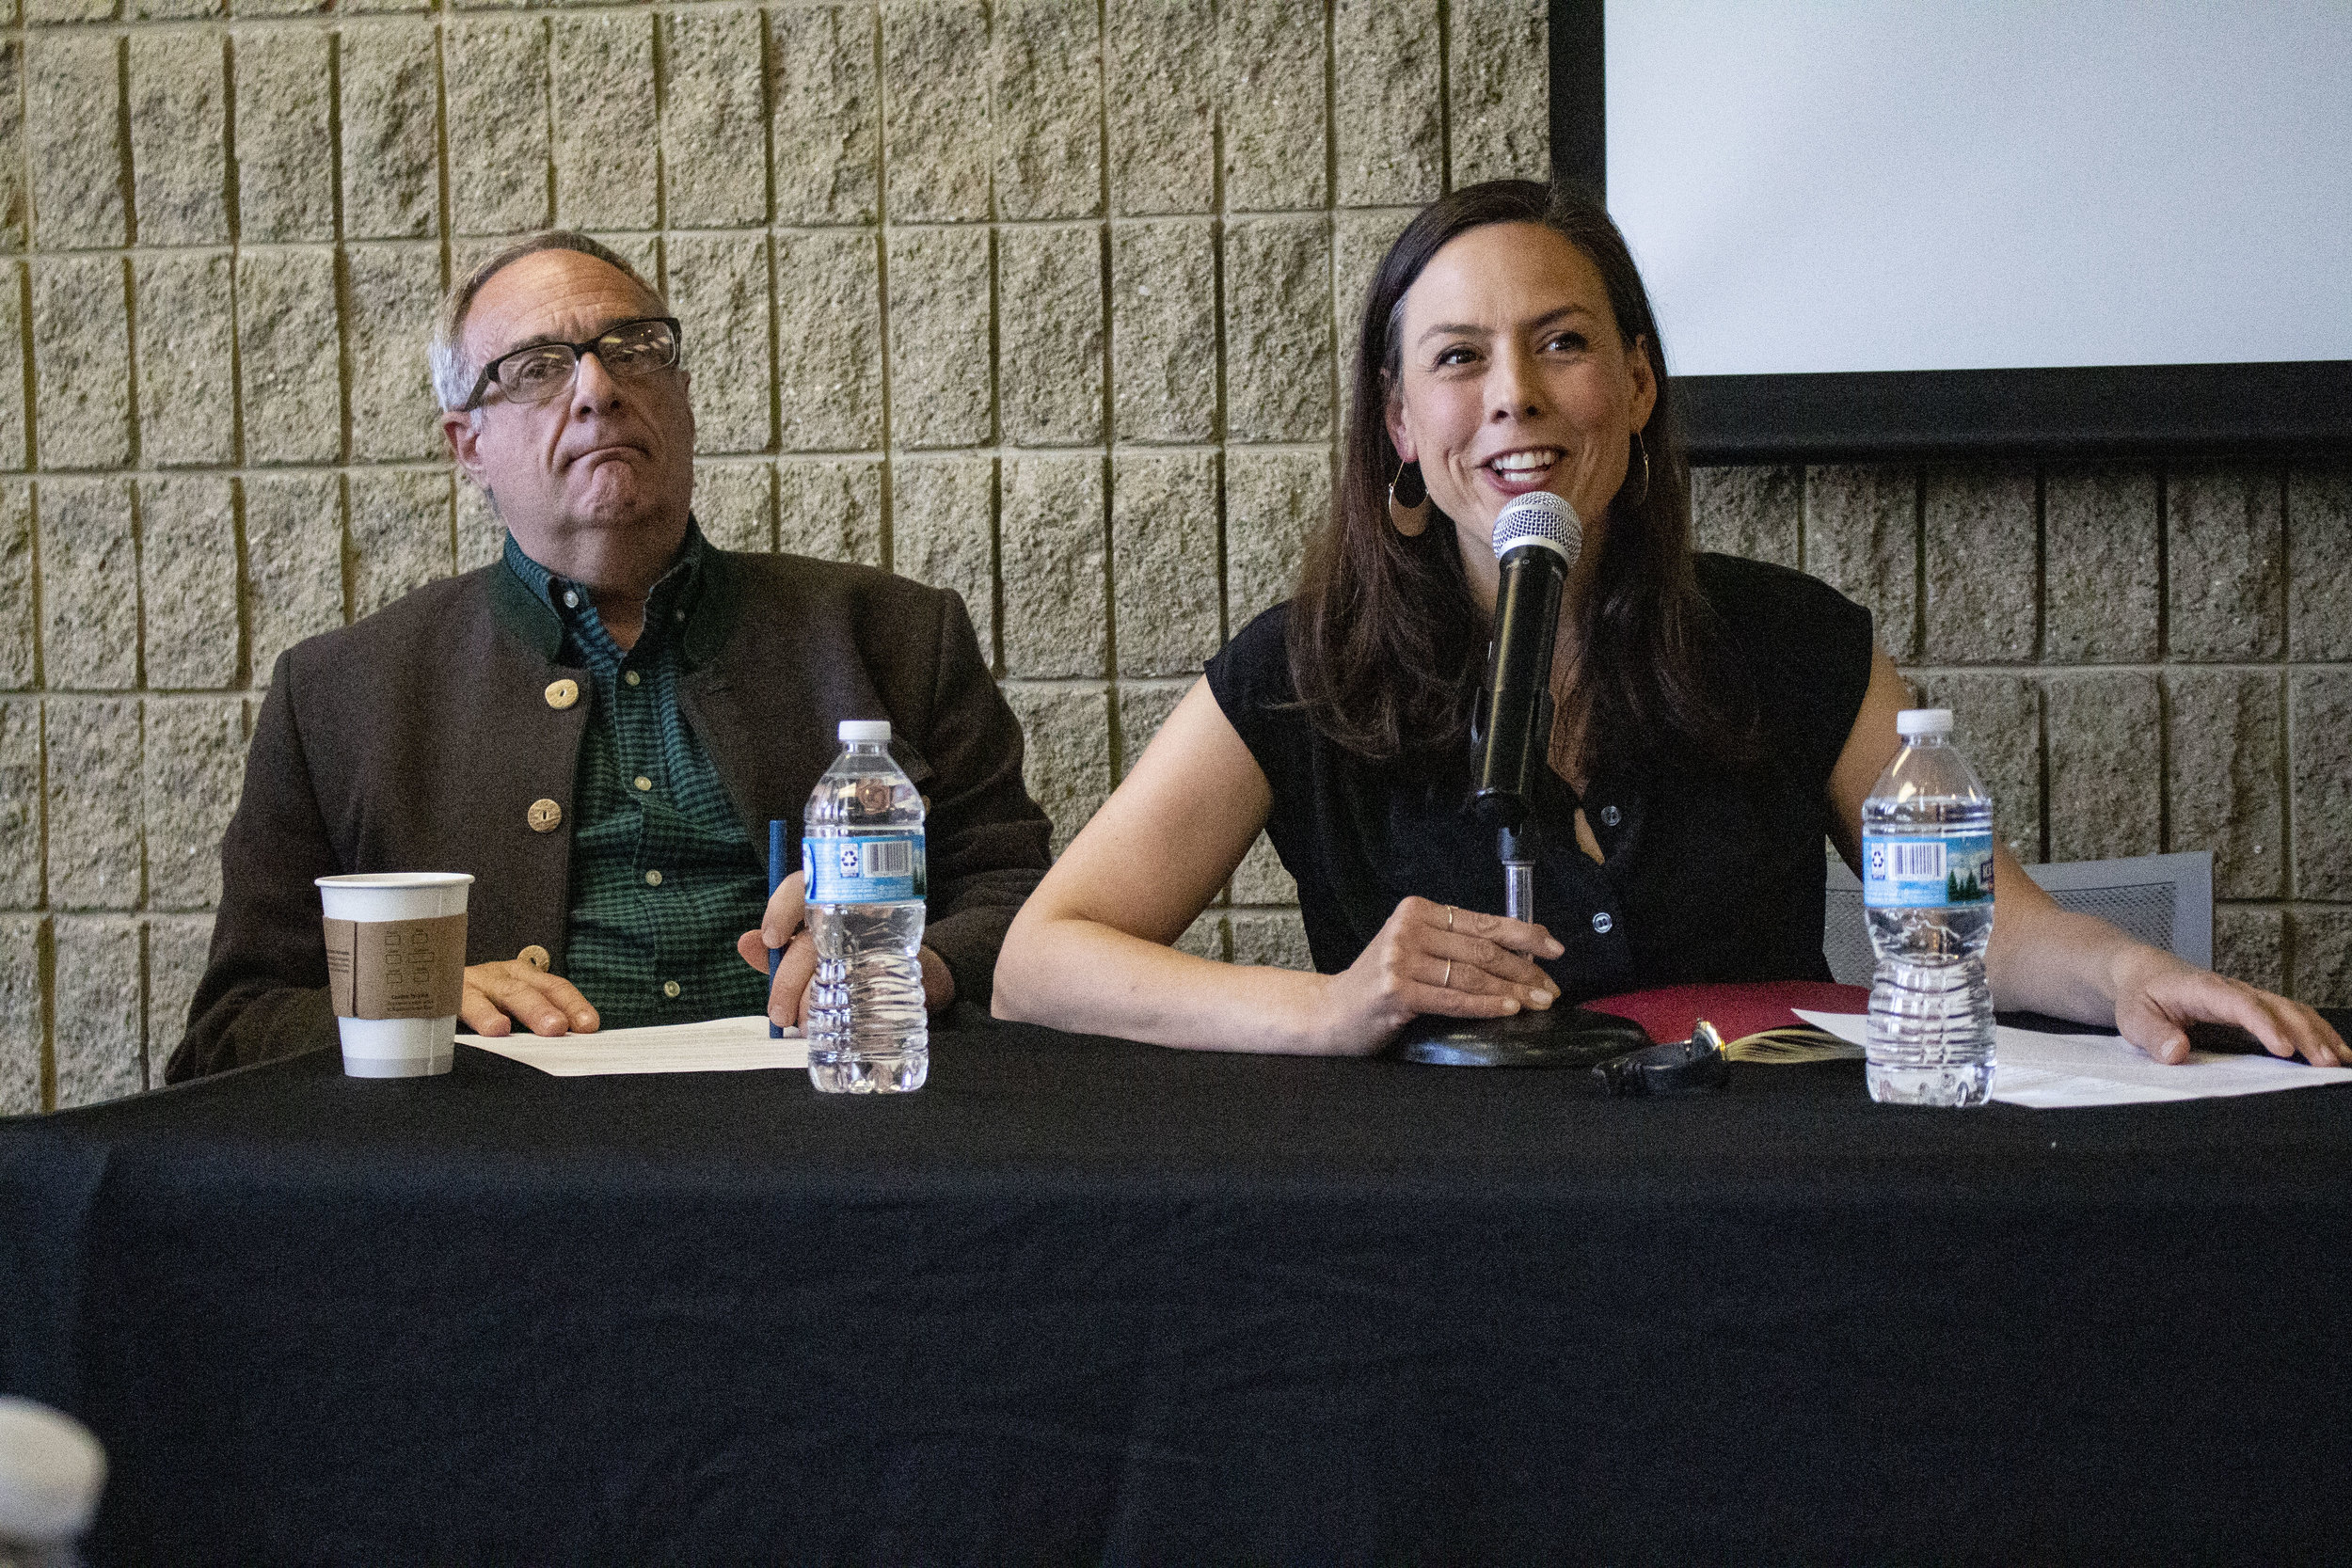 Brian Bouldrey and Rachel Webster moderate the panel discussion at the Northwestern Spring Writers' Festival.